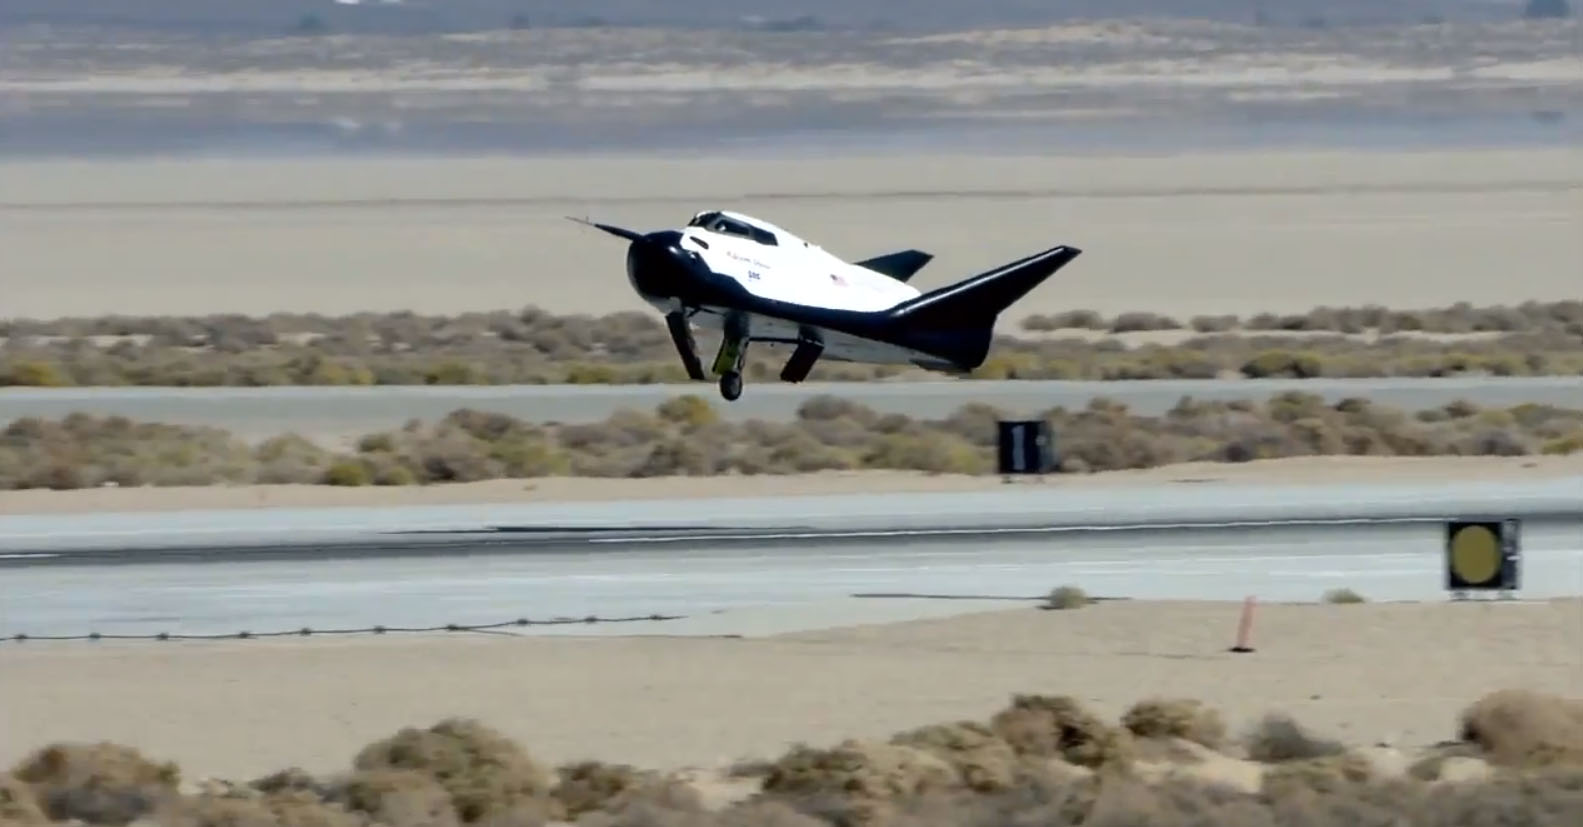 Private Dream Chaser Space Plane Skids Off Runway After Milestone Test Flight (Video)